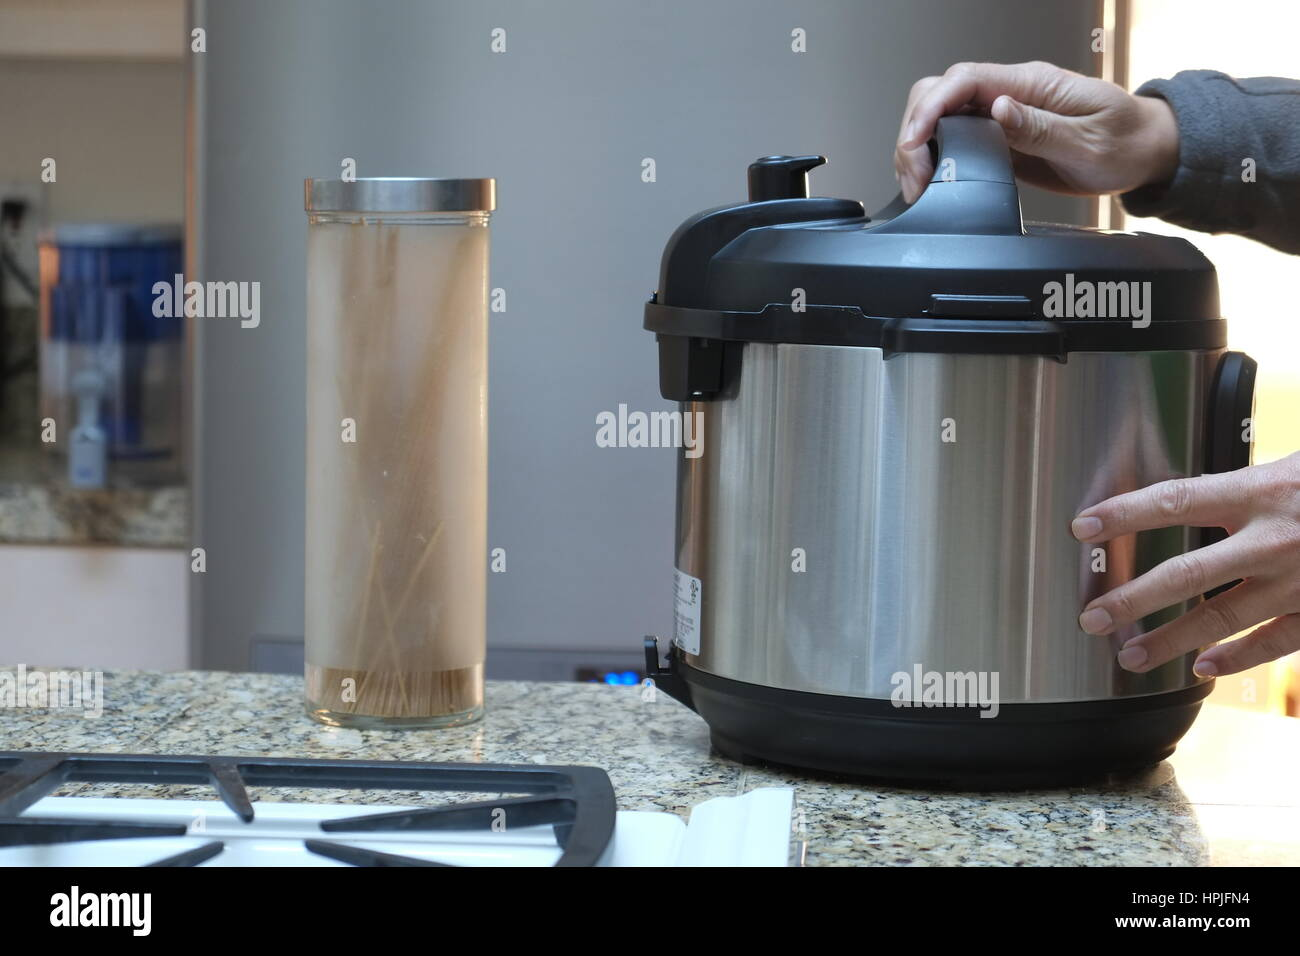 A pair of hands opening a pressure cooker - Stock Image